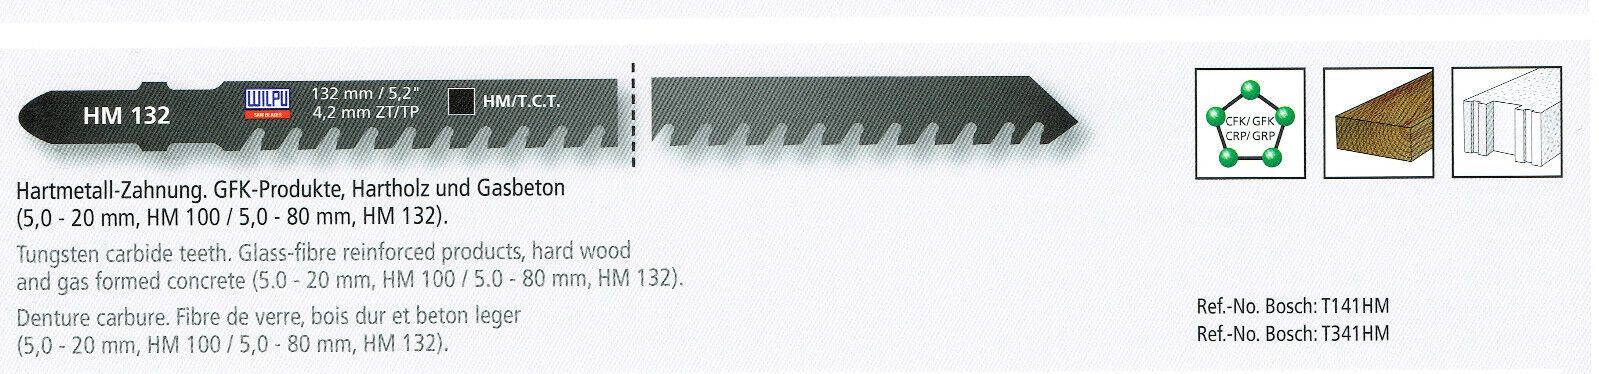 1 Hm Jigsaw Blade 100/132mm, for Bosch, For Gfk ,Porous Concrete, Hard Wood